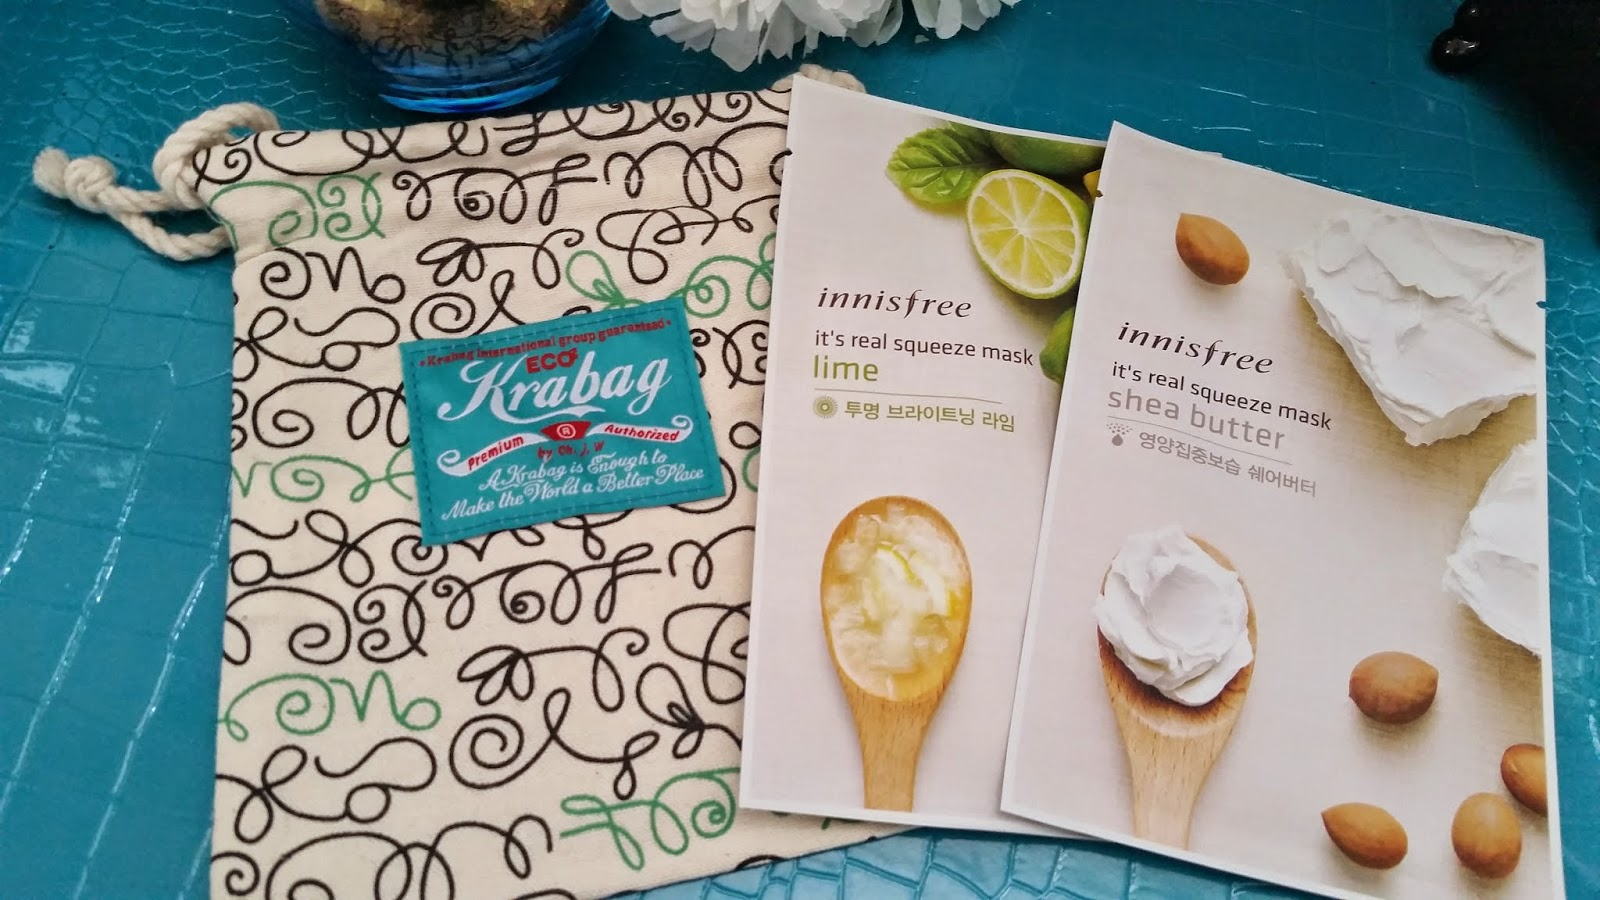 Innisfree Eco Krabag, It's Real Squeeze mask in lime and Shea Butter